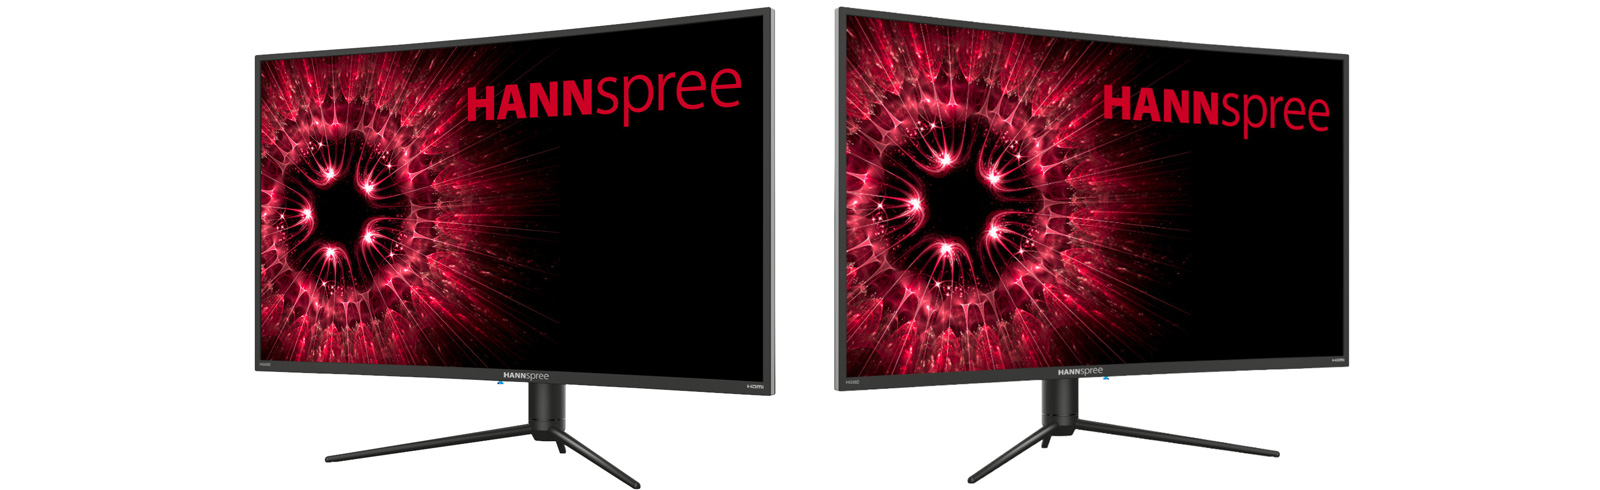 """The Hannspree HG392PCB features a 38.5"""" curved VA display with a 165Hz refresh rate"""